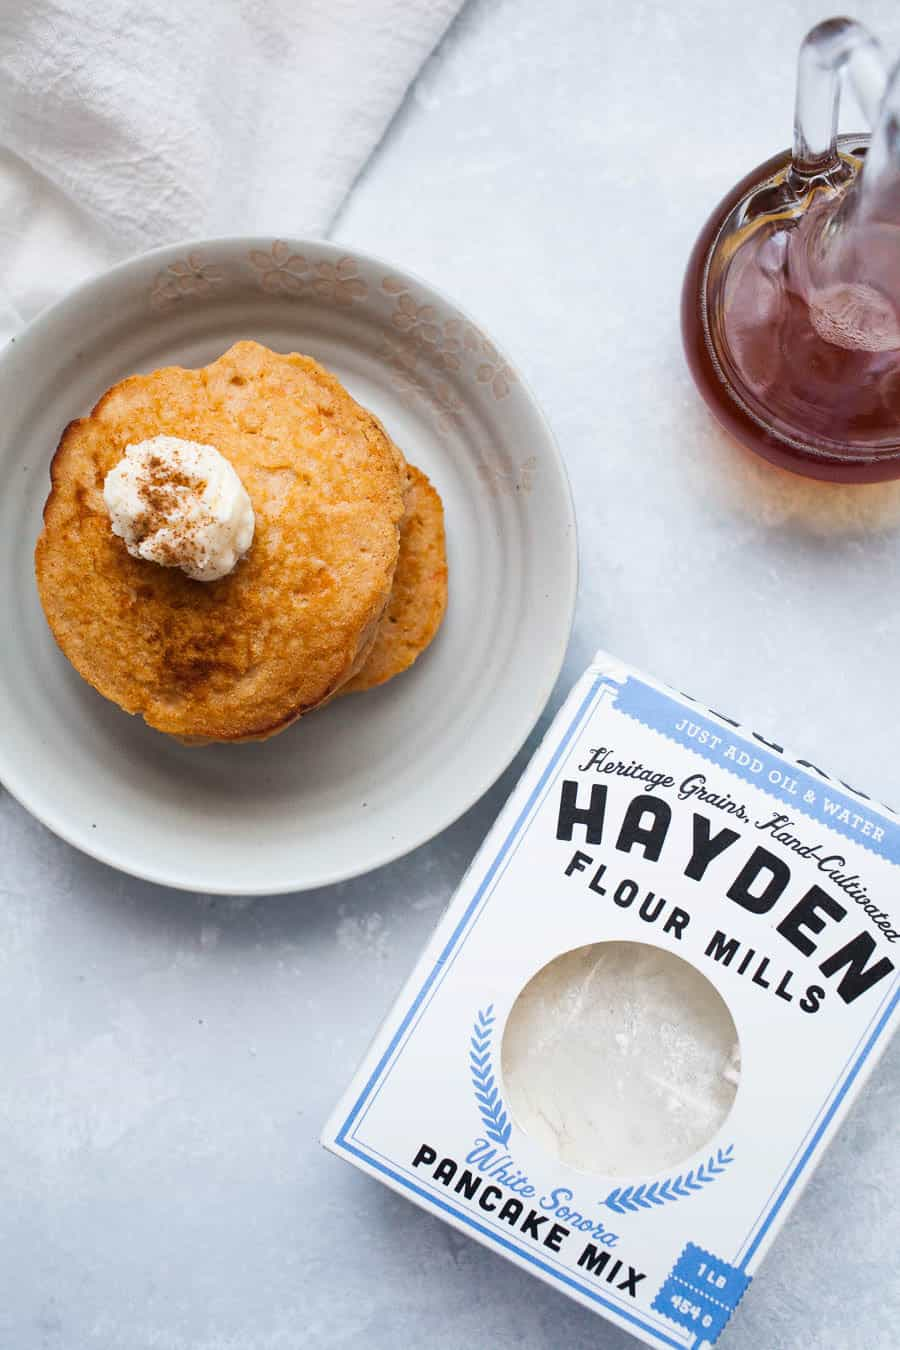 If you love breakfast, you'll love these sweet potato pancakes with whipped maple butter! They're the perfect switch from regular pancakes and have a great sweet potato flavor. Whether or not it's the fall season, these sweet potato pancakes are definitely a must!?